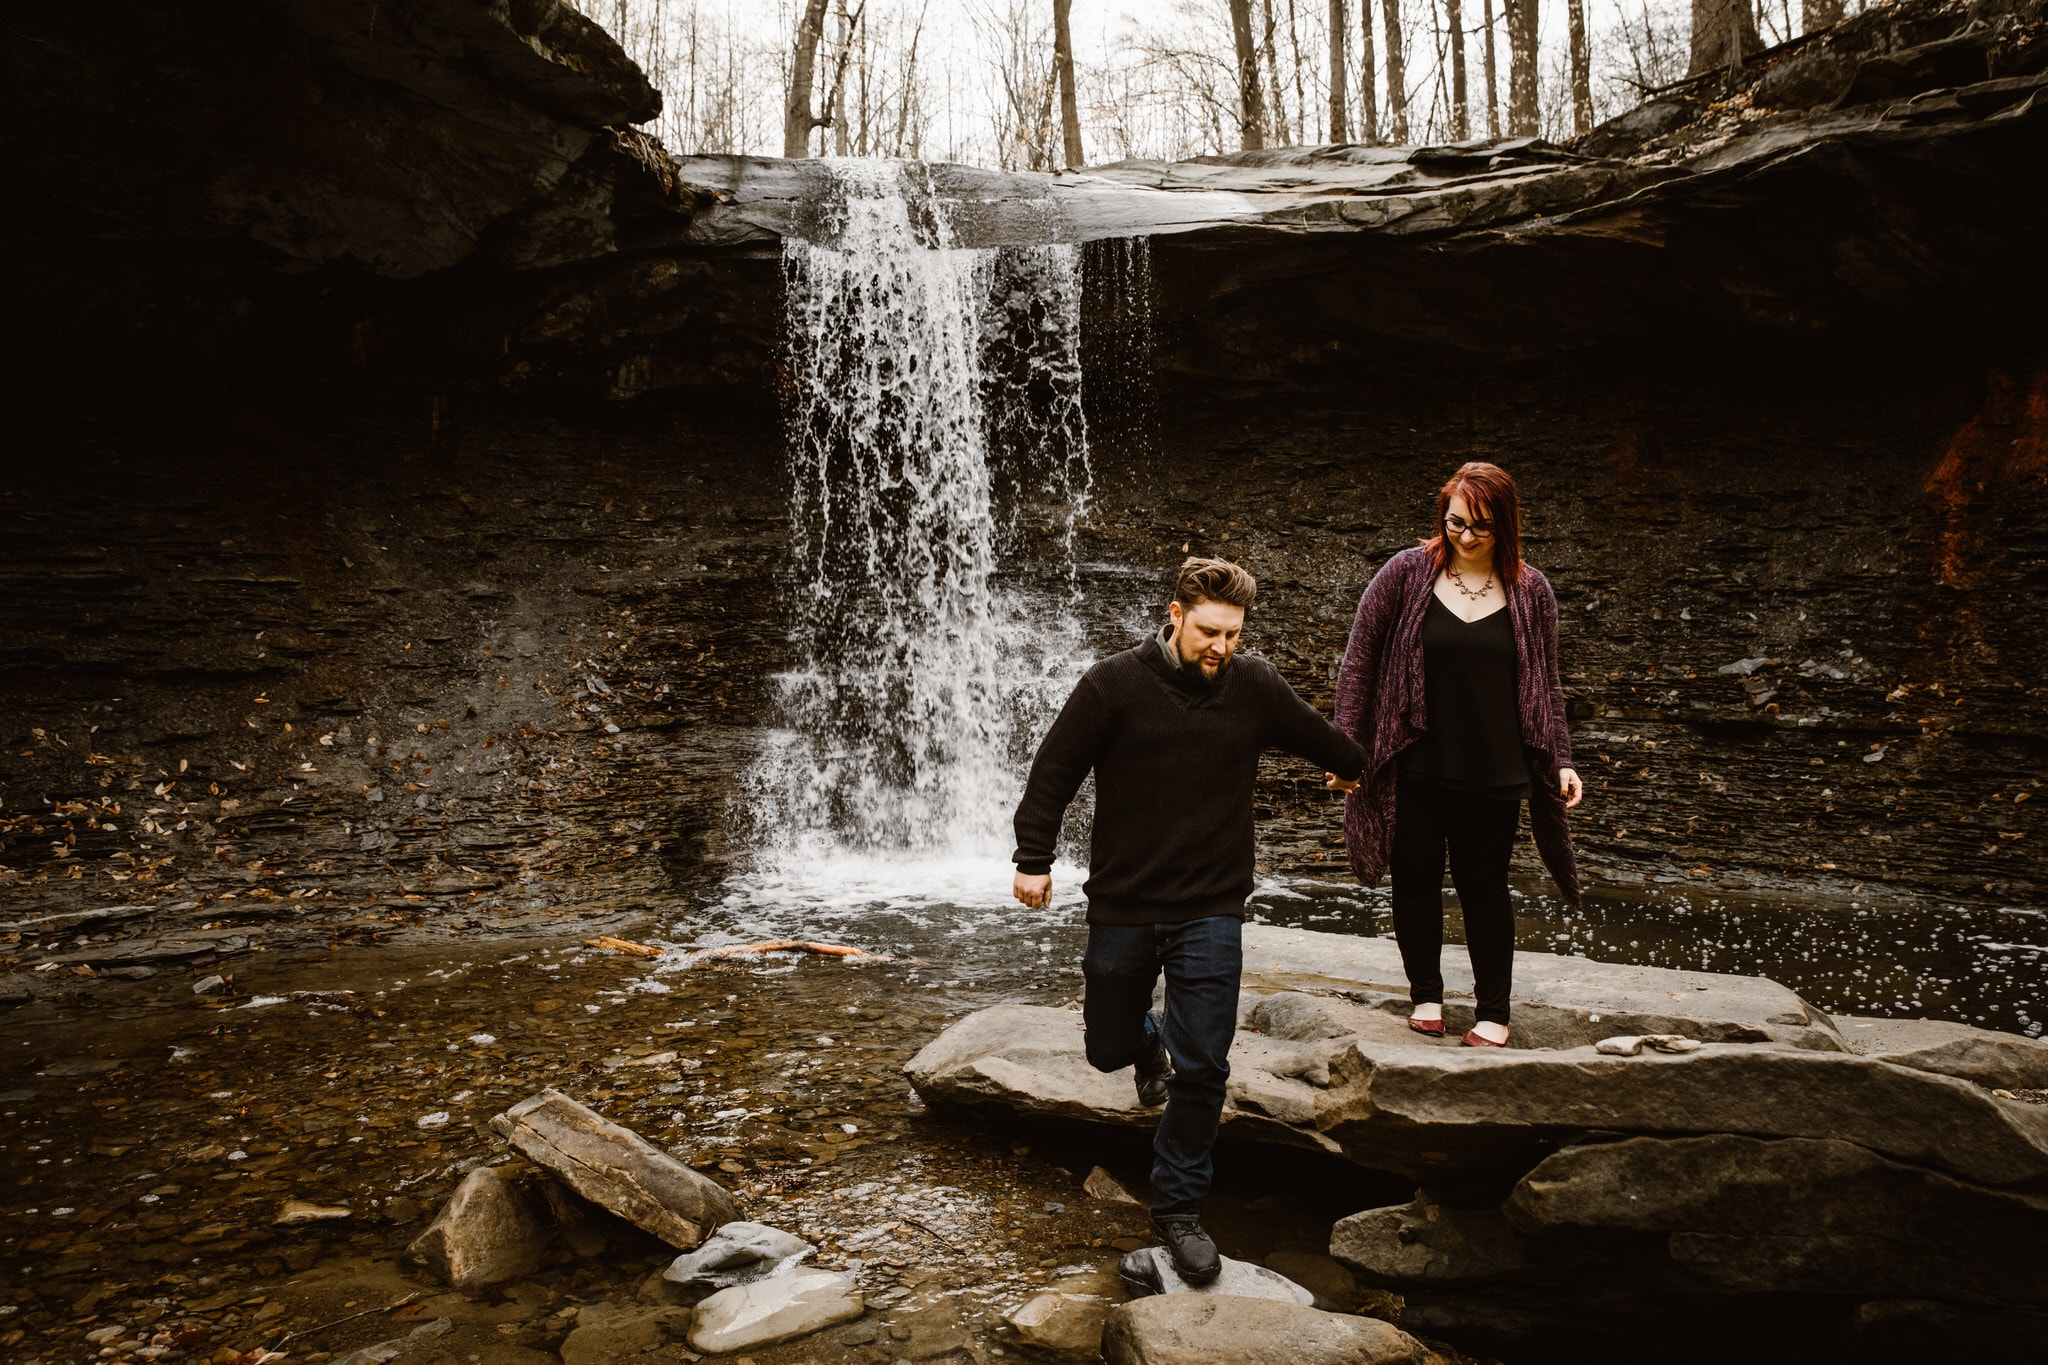 cuyahoga Valley National Park Adventurous Elopement Locations Ohio Elopement Photographer Engagement Session Elopement Ledges Overlook Virginia Kendall Cliffs